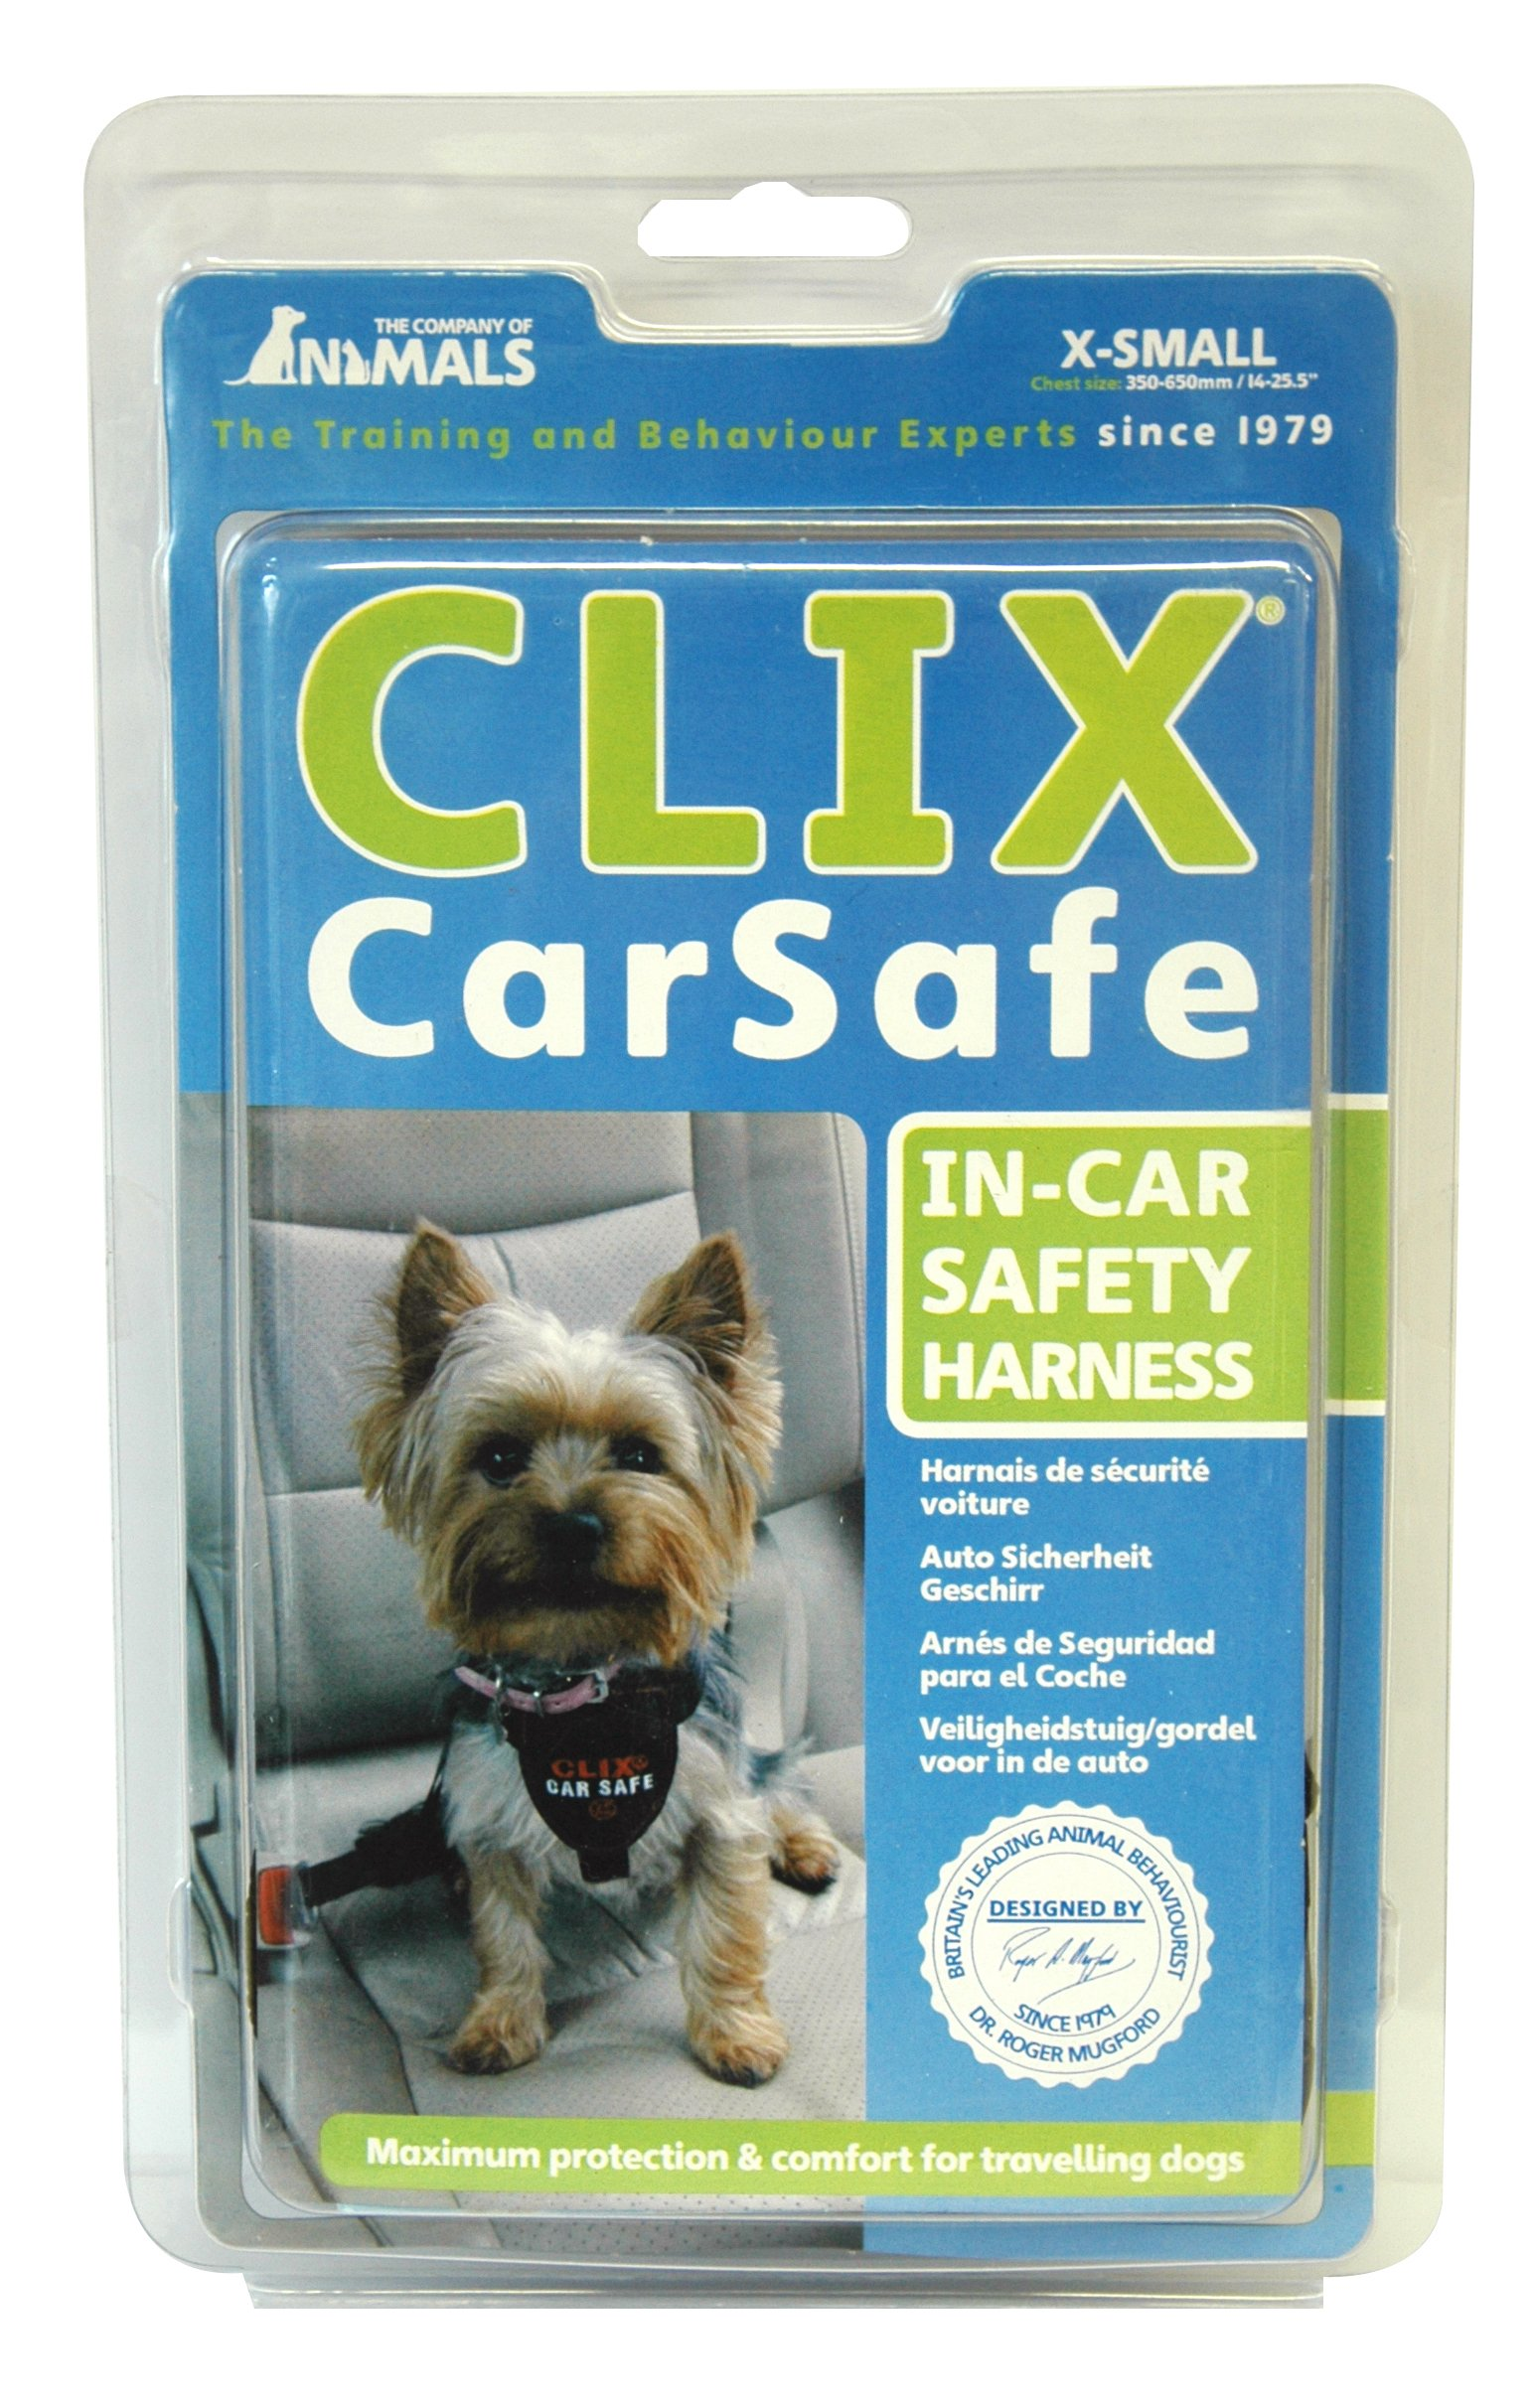 The Company of Animals - CLIX CARSAFE Dog Harness - Multi-Purpose Car Seat Belt and Walking Harness - Easy, Adjustable, Secure and Safe - X-Small by The Company of Animals (Image #7)